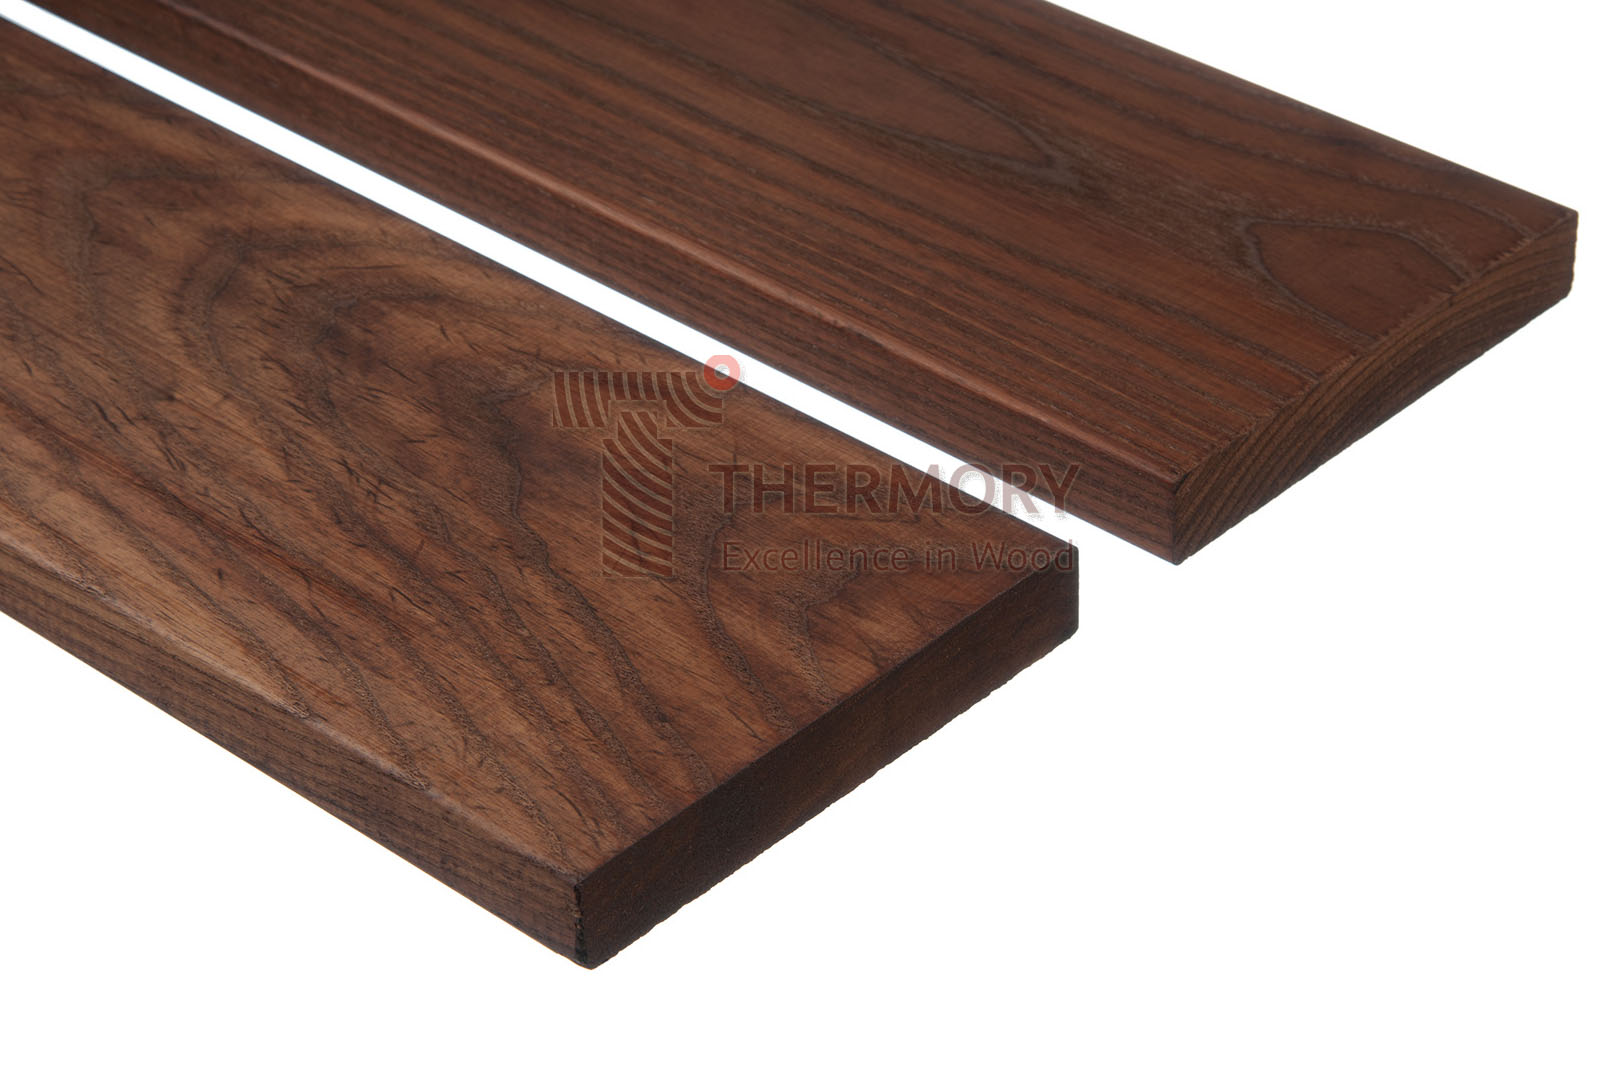 D4 20x150mm - The D4 profile is a s classic decking board which does not require any additional fitting systems.